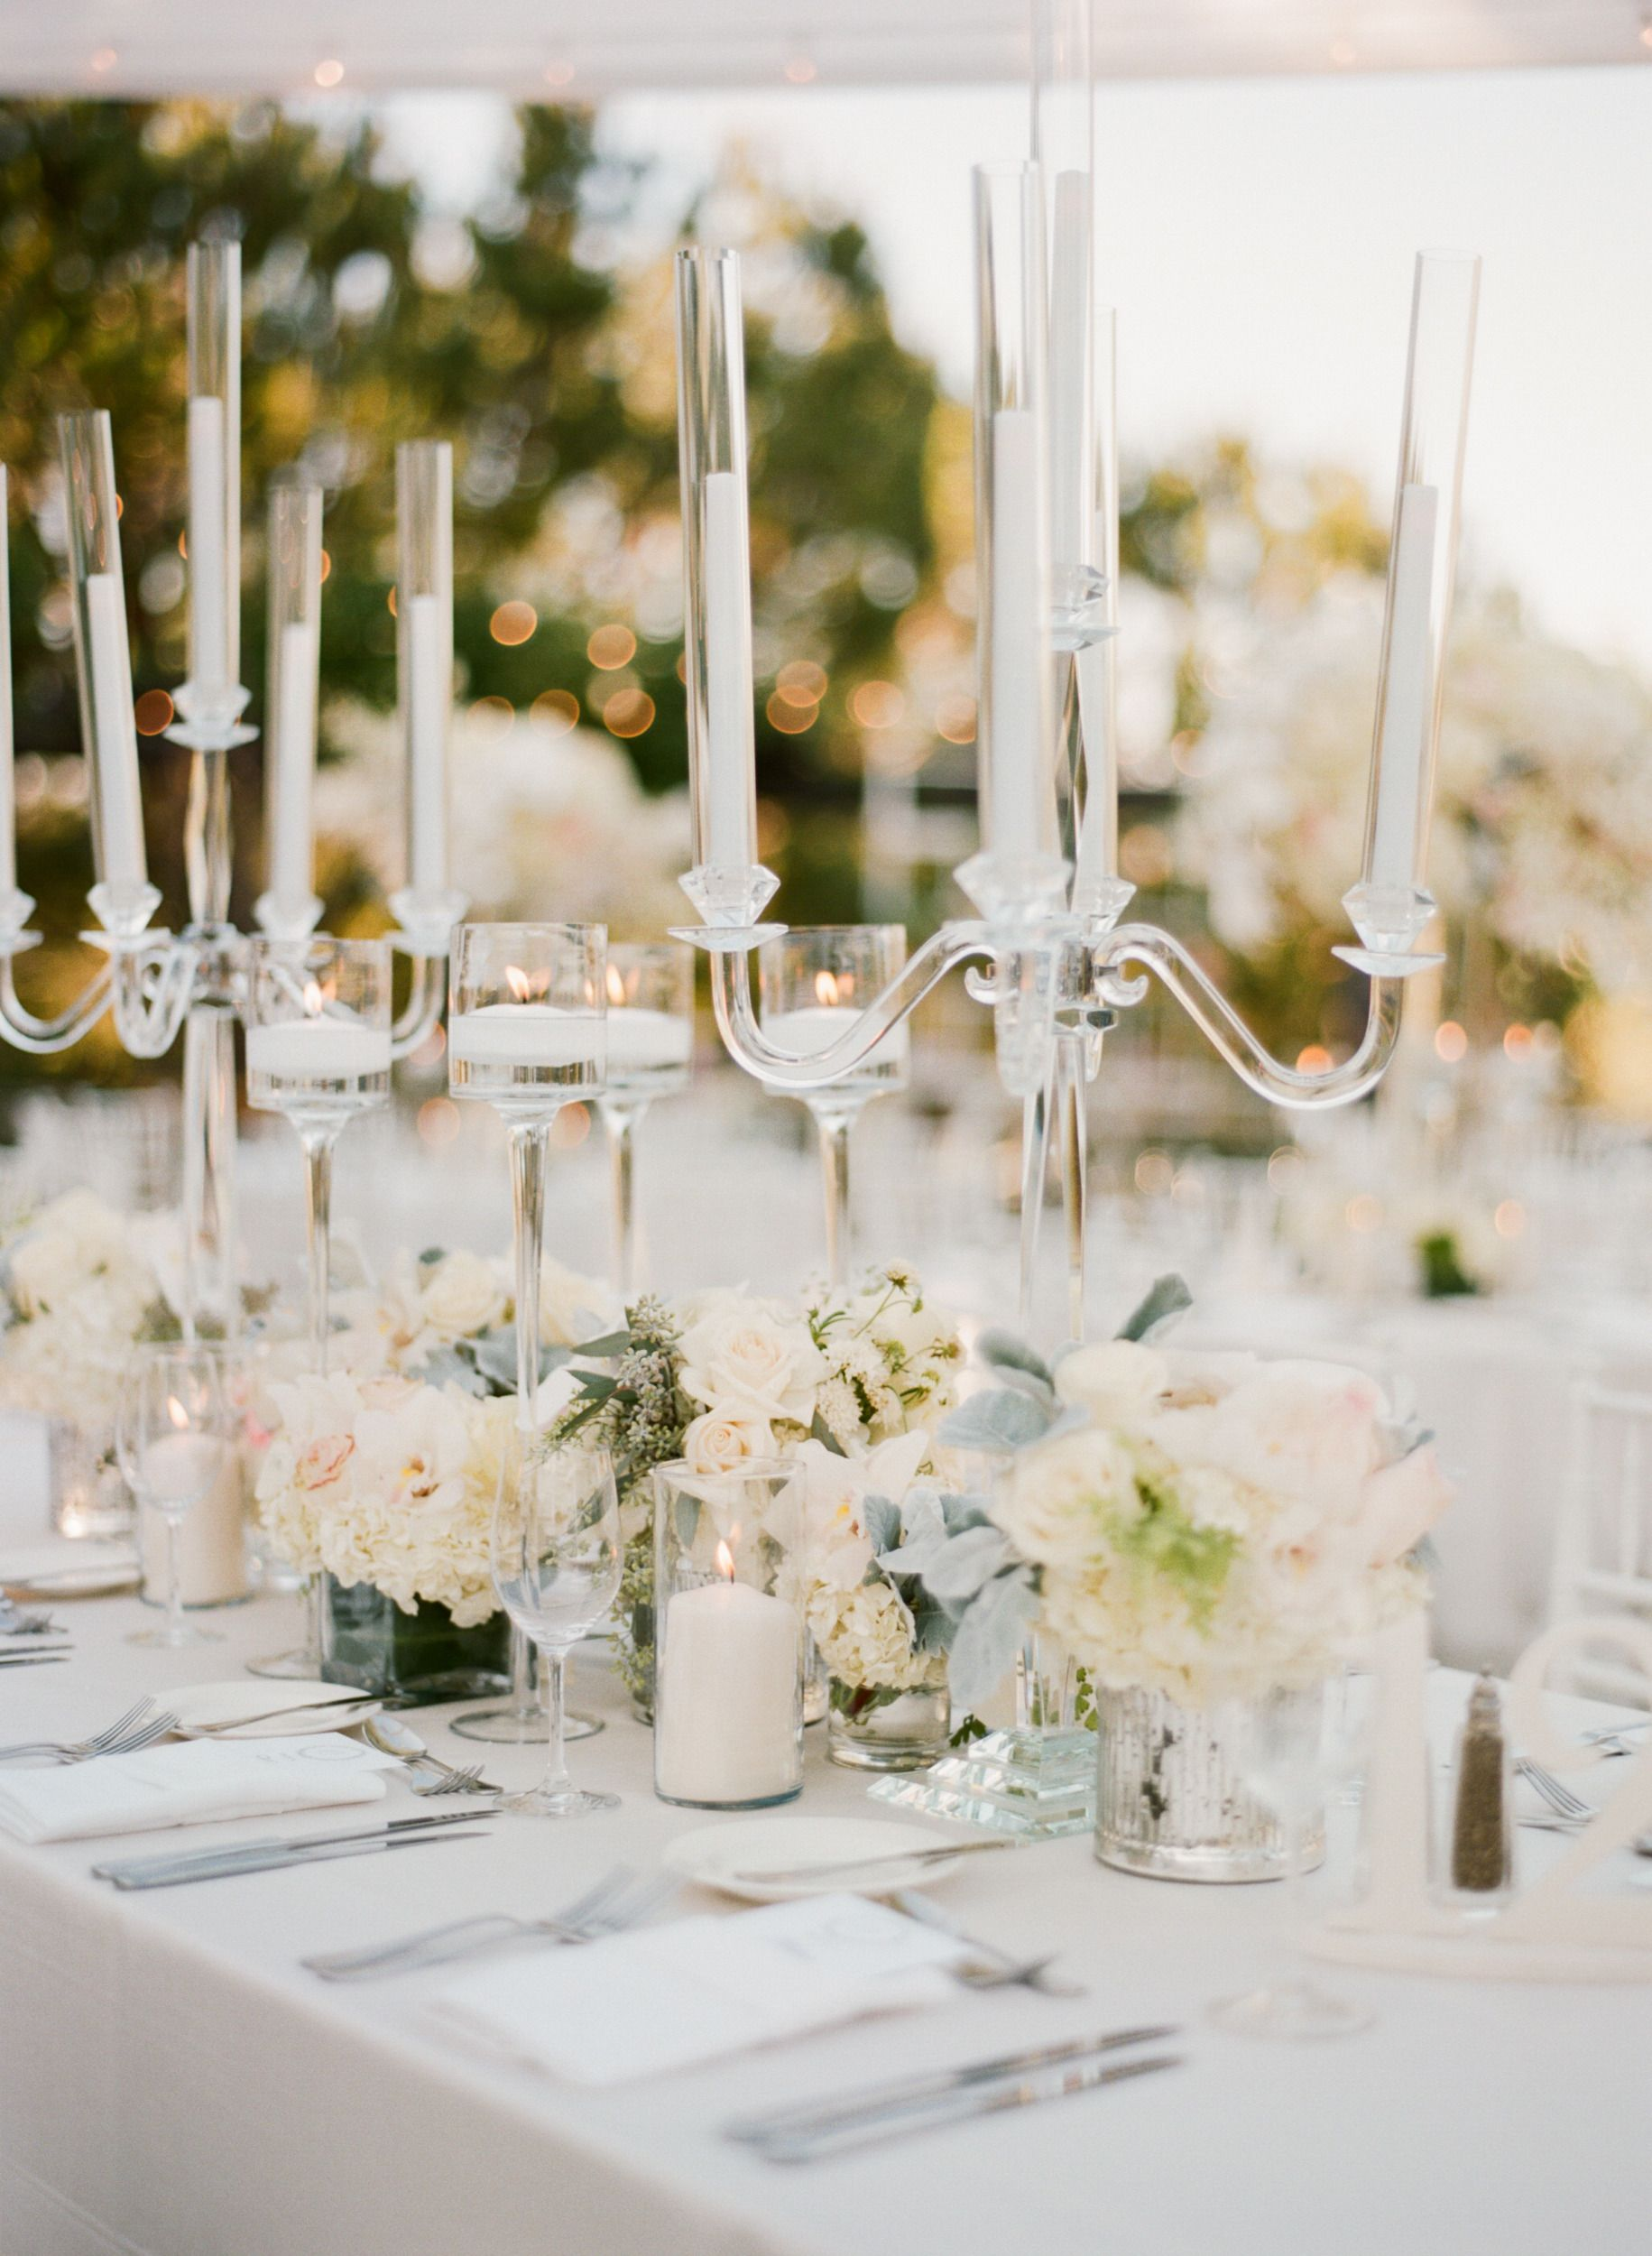 Elegant Blush & Ivory Outdoor Wedding | Pinterest | Reception ...